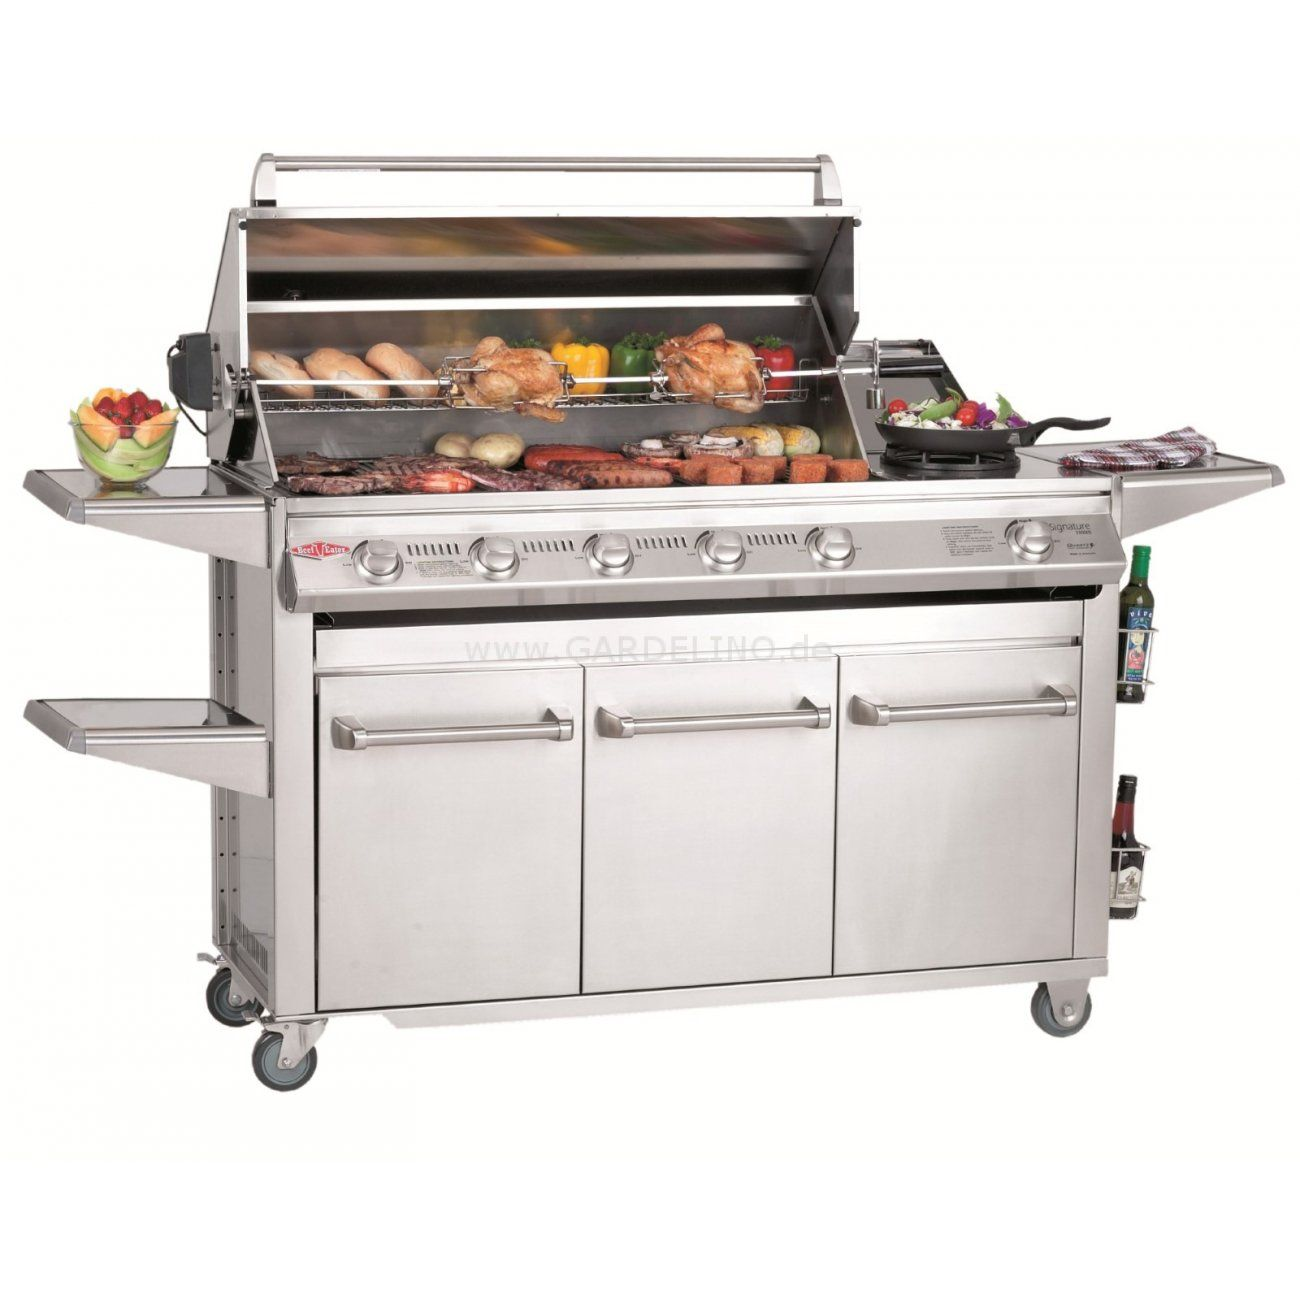 Gasgrill Küche Indoor Beefeater Bbq Gasgrill Trolley Signature Sl 4000 | Die Welt Des Grillens | Beefeater Bbq, Gas